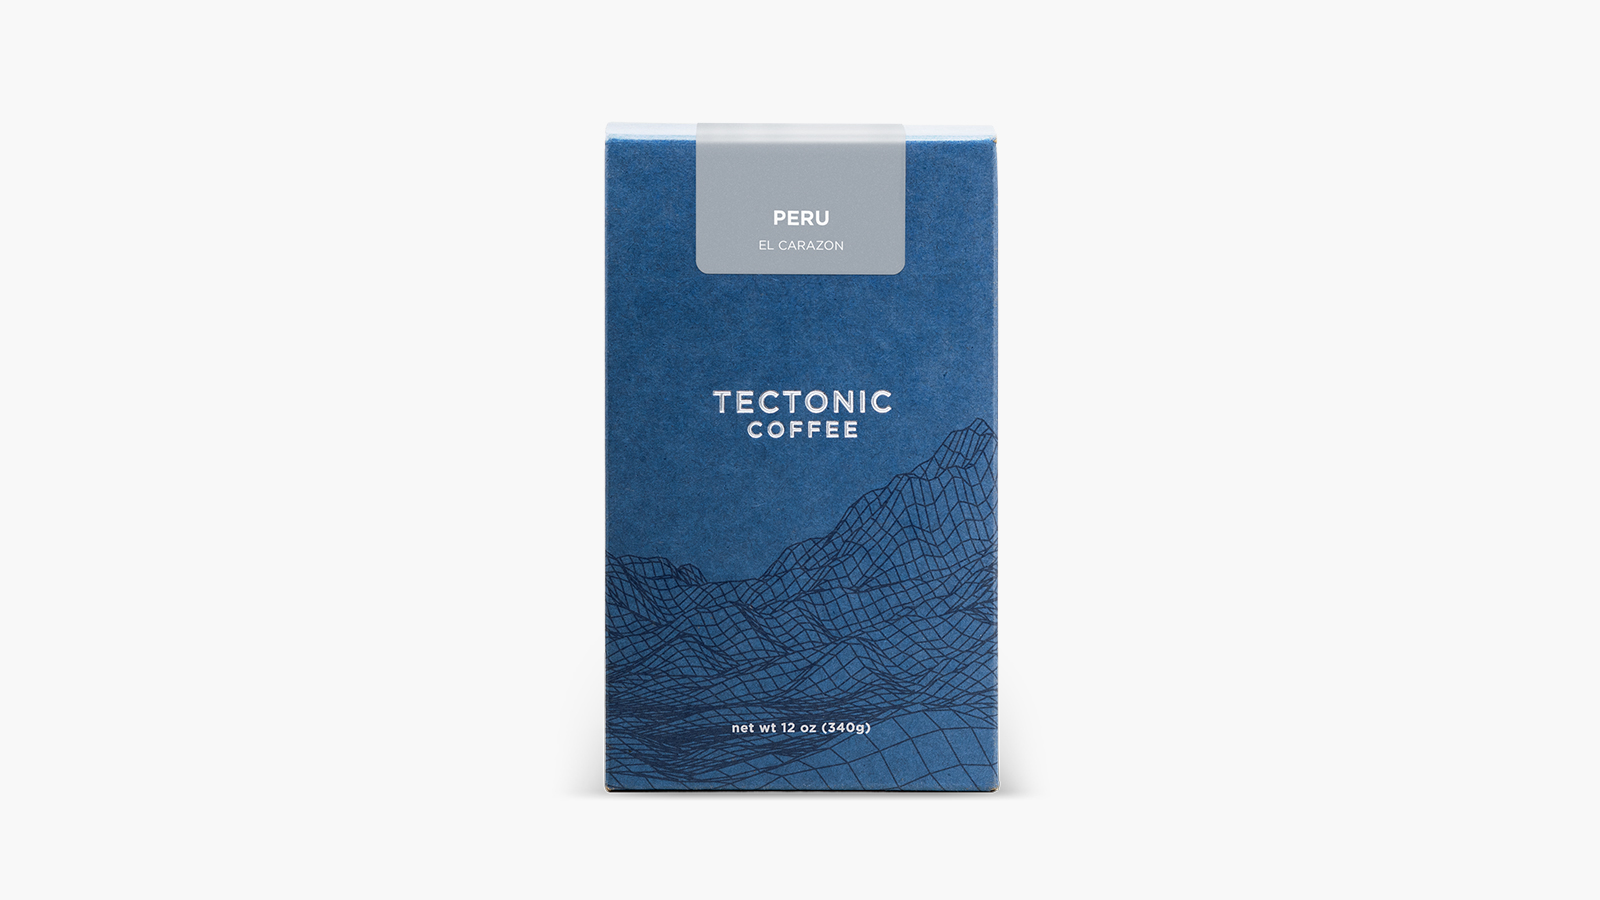 Tectonic Coffee Peru El Carazon